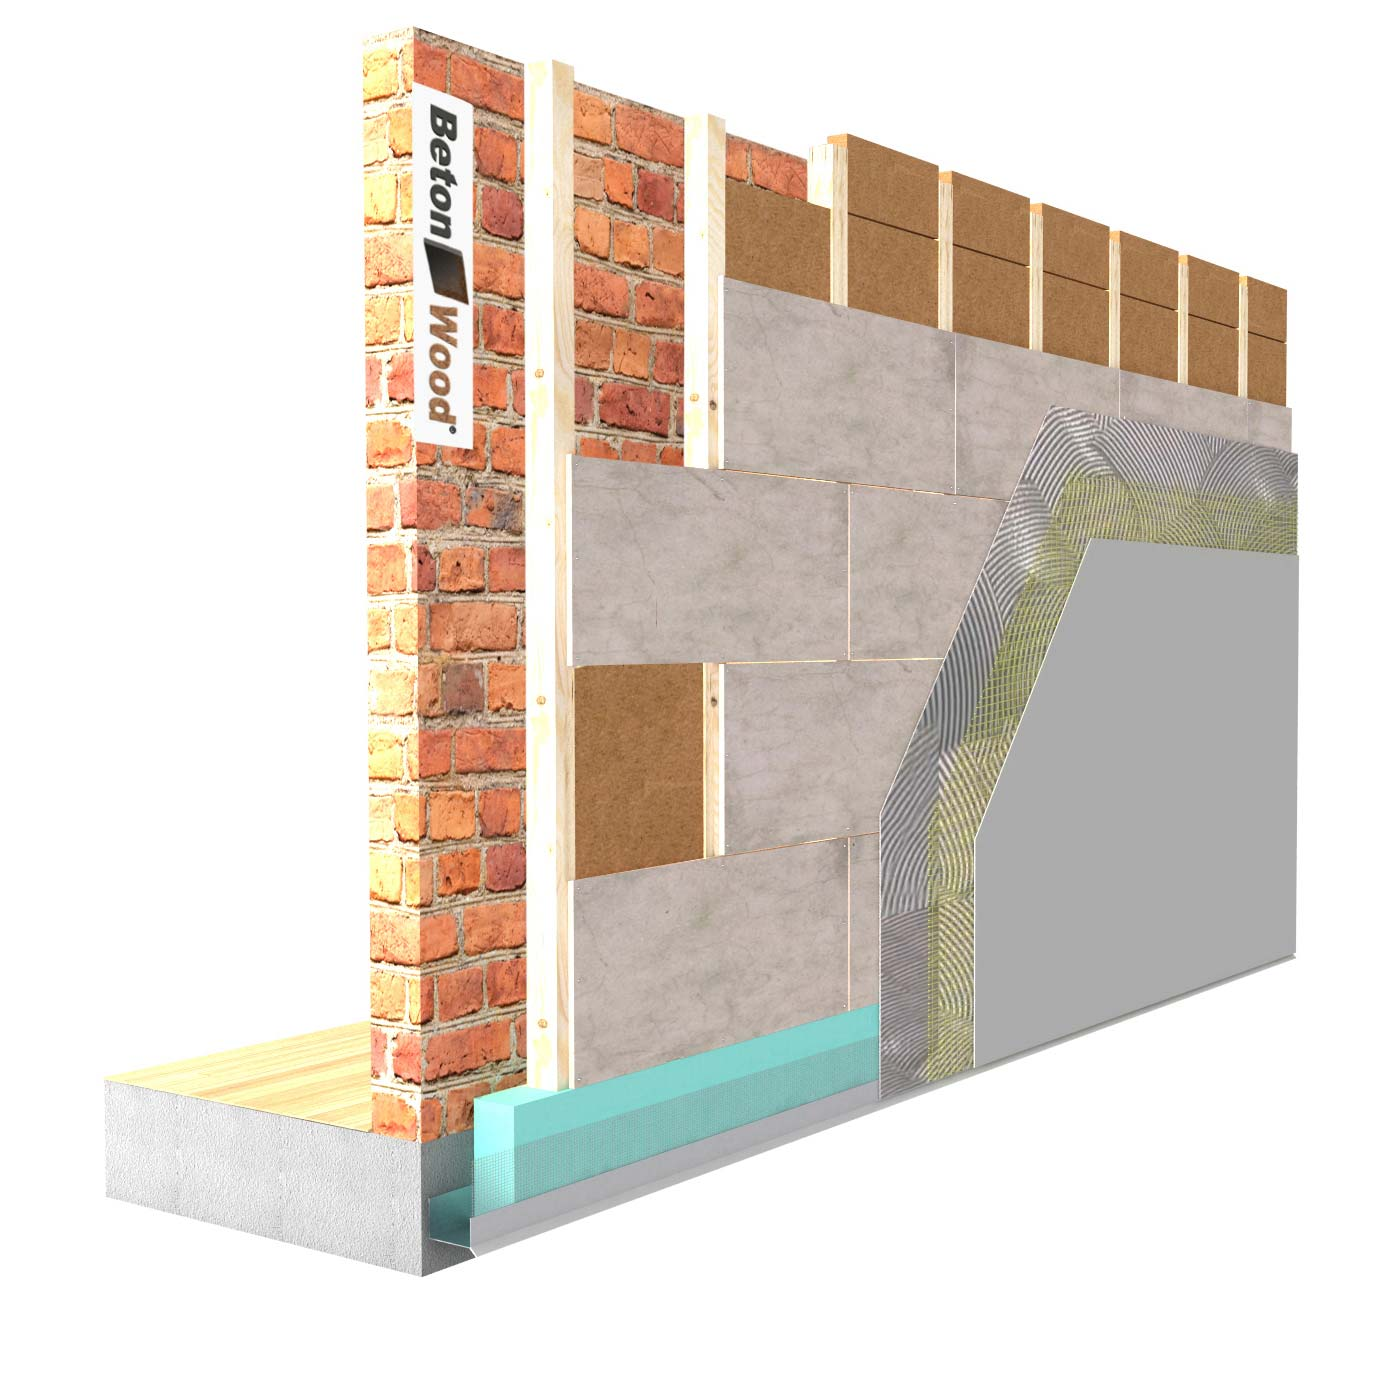 External insulation system with Fiber Wood FiberTherm and cement bonded particle board on masonry